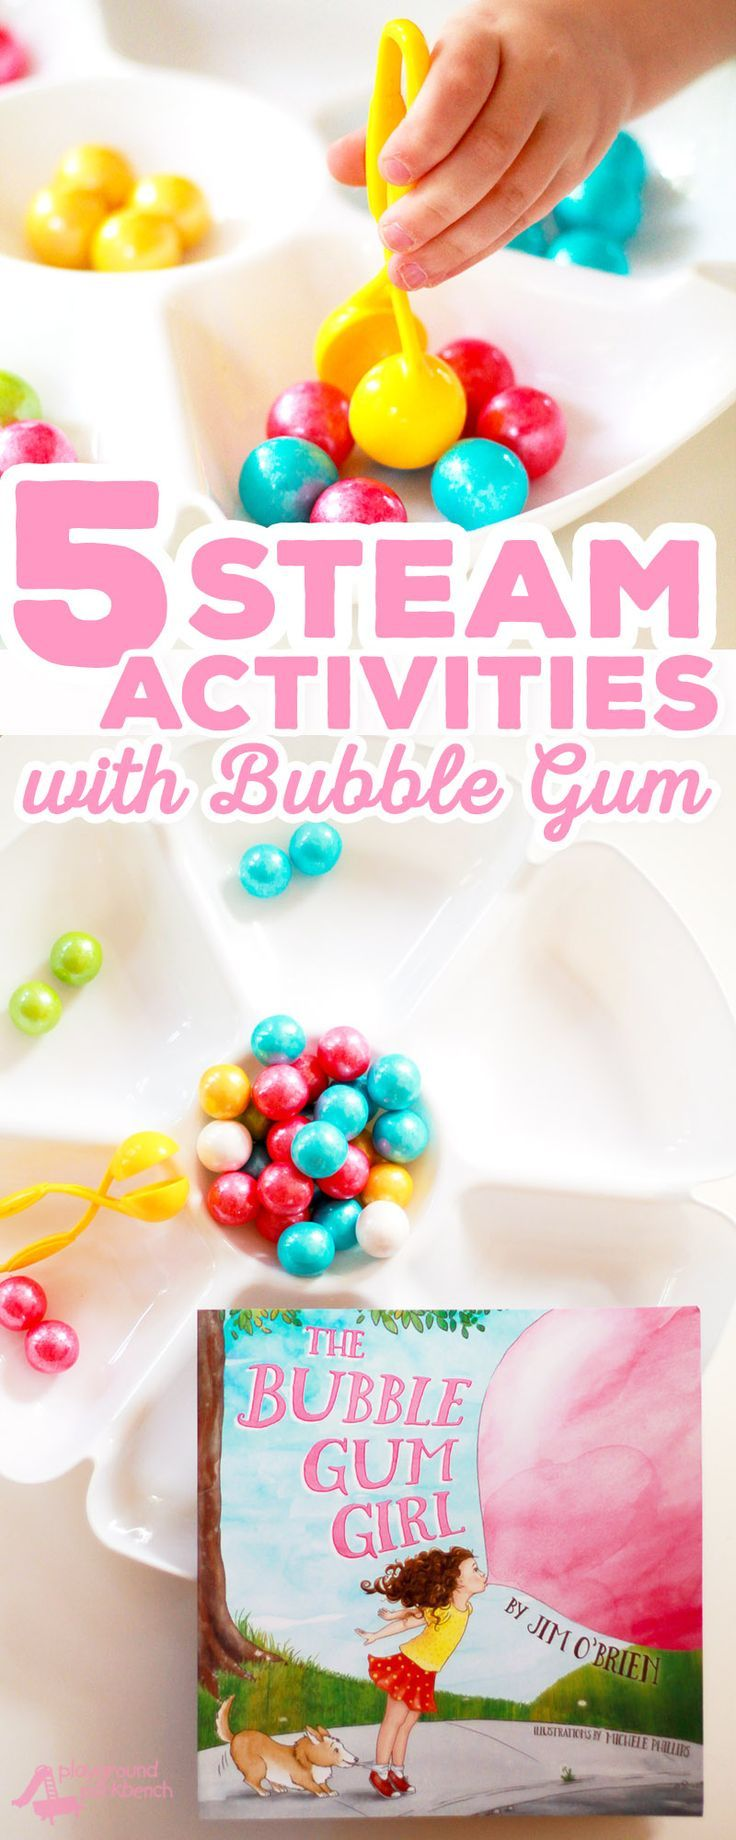 Go on a STEAM exploration with Bubble Gum, inspired by the fun new picture book…